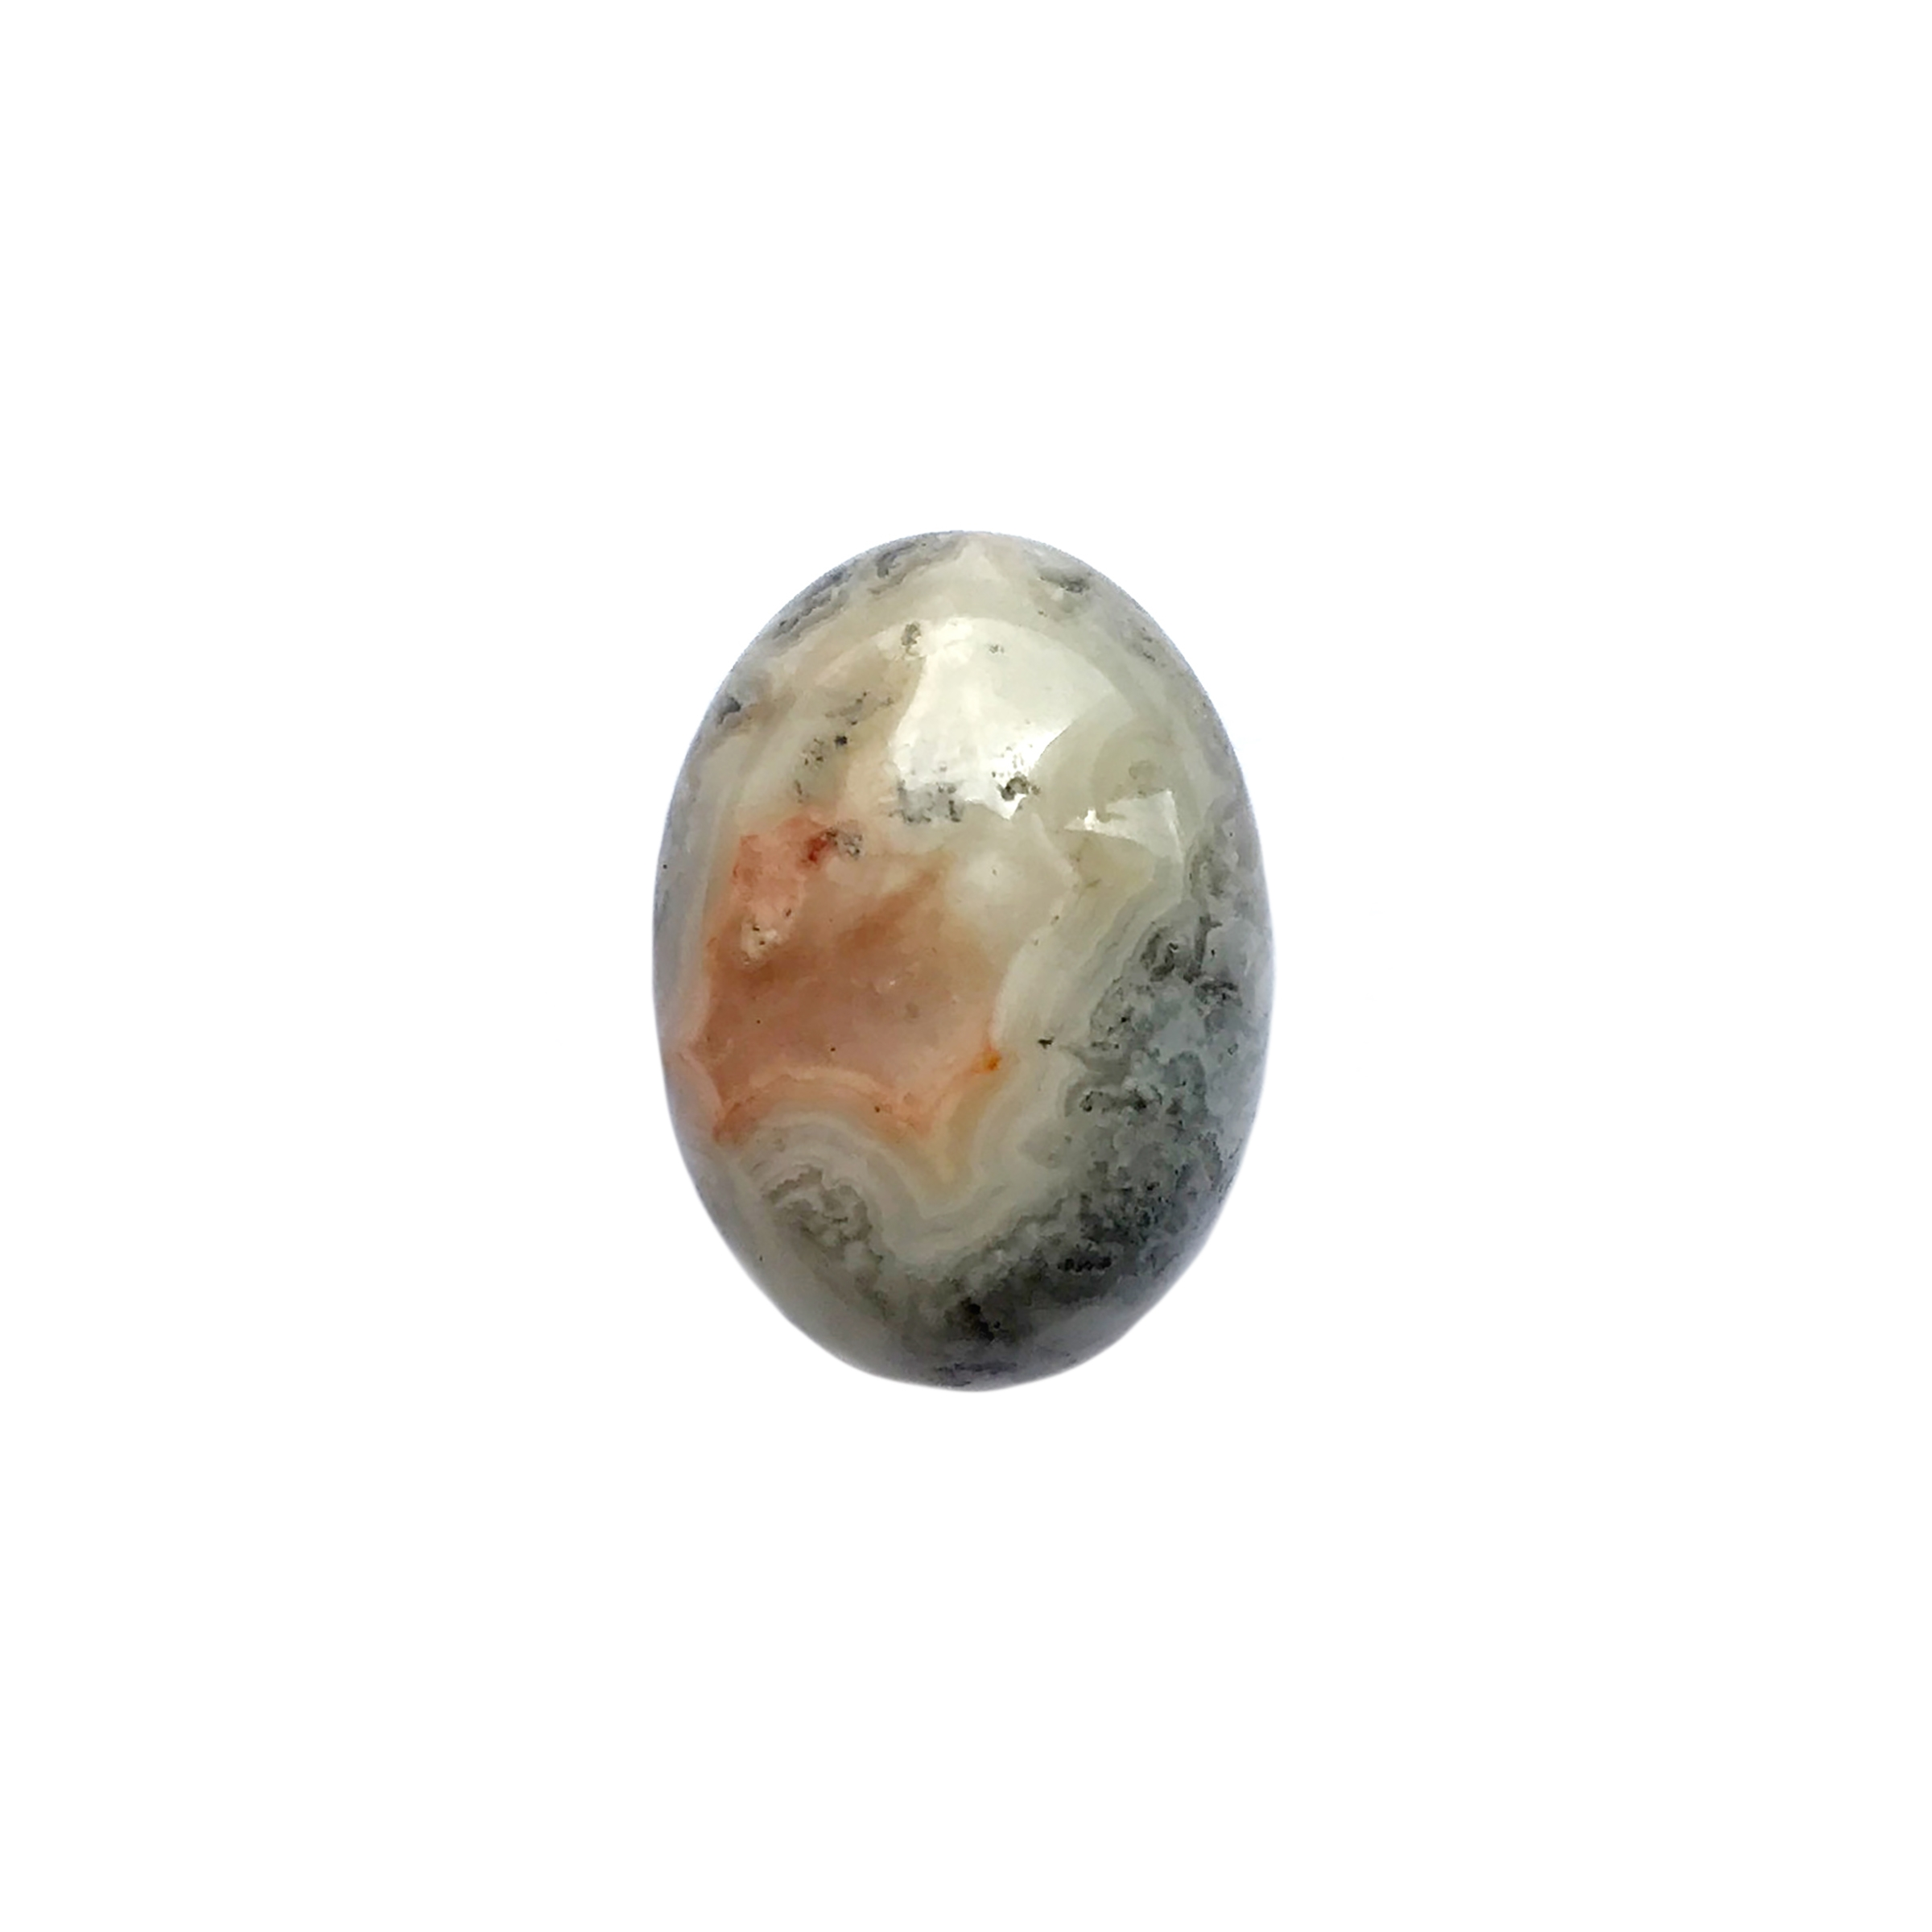 mexican crazy lace stone, semi precious stone, mexican stone, agate, rust and tan agate, 18x13mm, natural stone, semi precious cab, semi precious gemstones, natural, B'sue by 1928, lace agate, crazy lace agate, jewelry making, stone jewelry, 03652